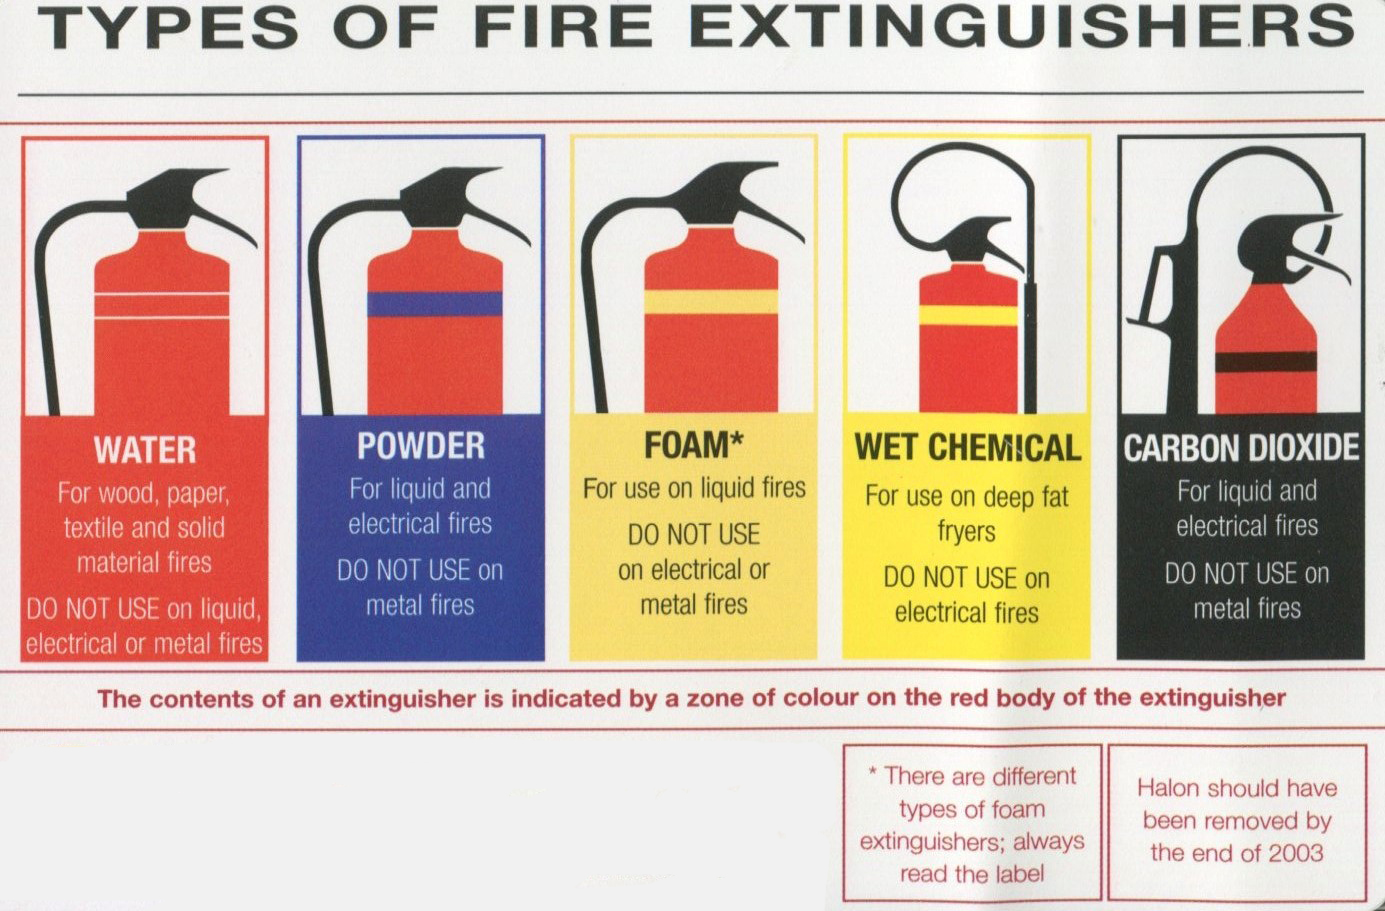 Types of fire extinguishers - description, use and characteristics 60